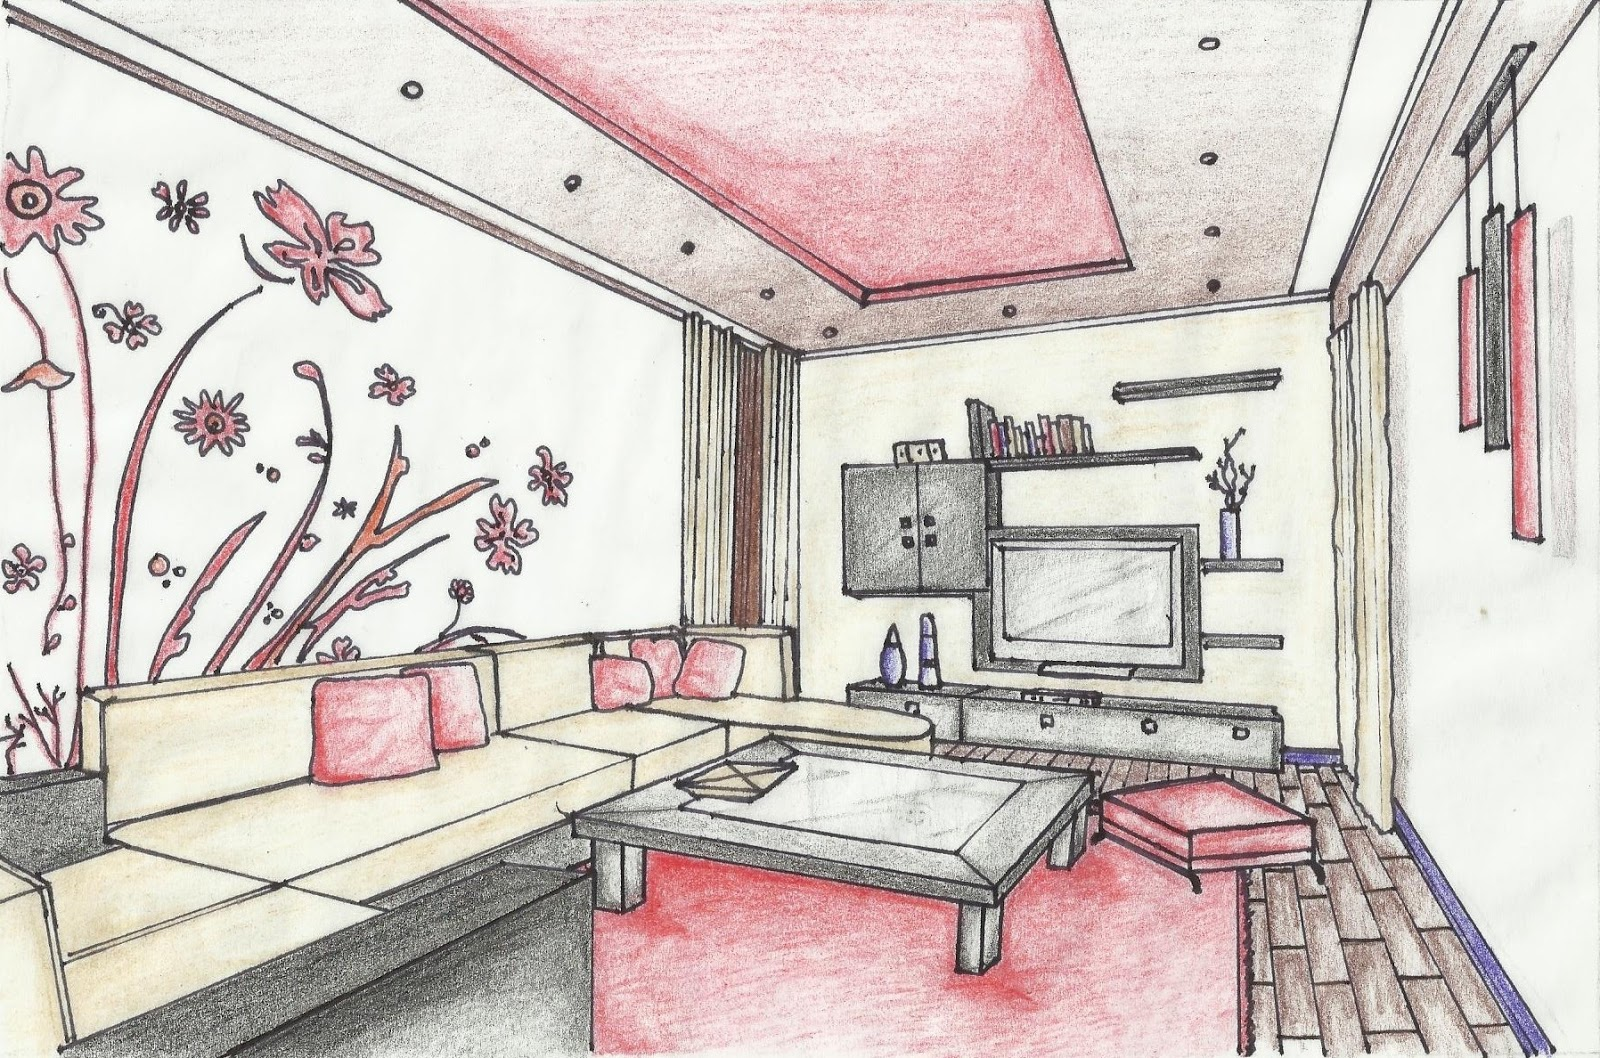 Manchester School Of Architecture Portfolio Sketches: room sketches interior design